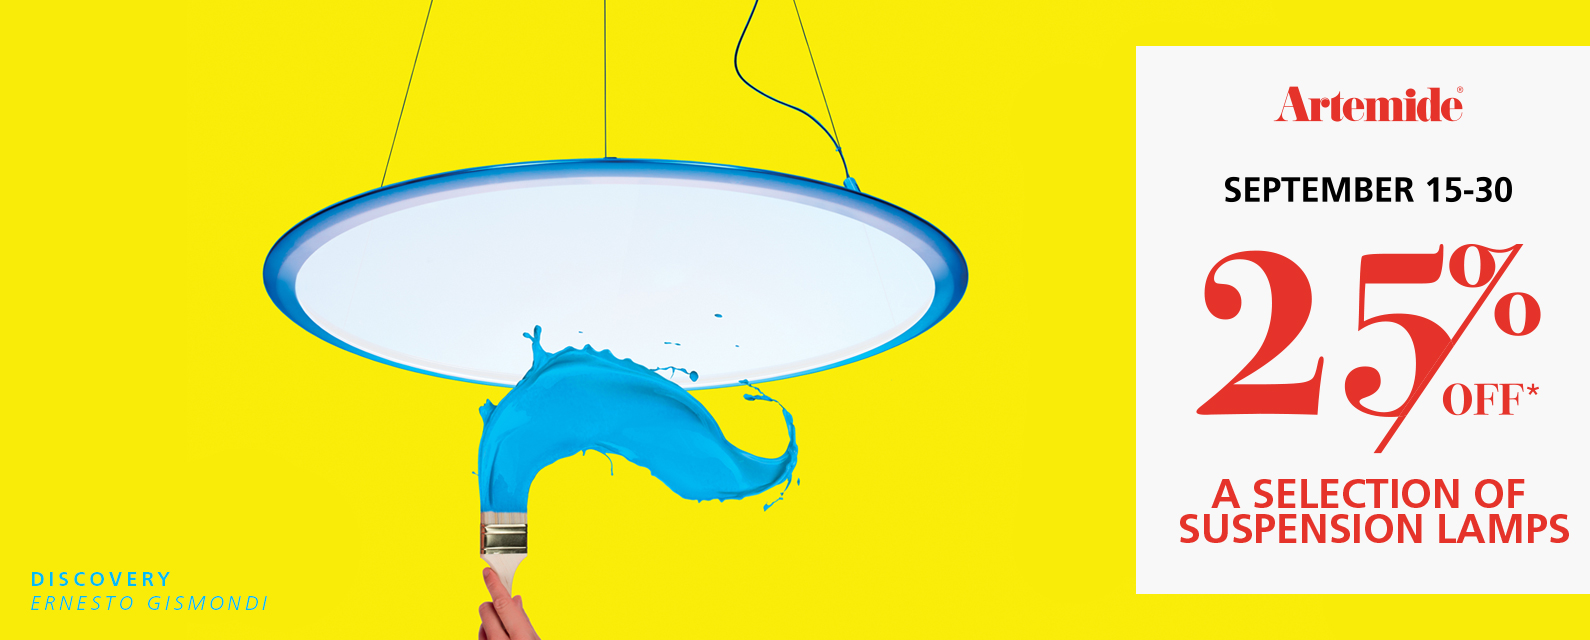 Artemide-Special-Suspension-Sale